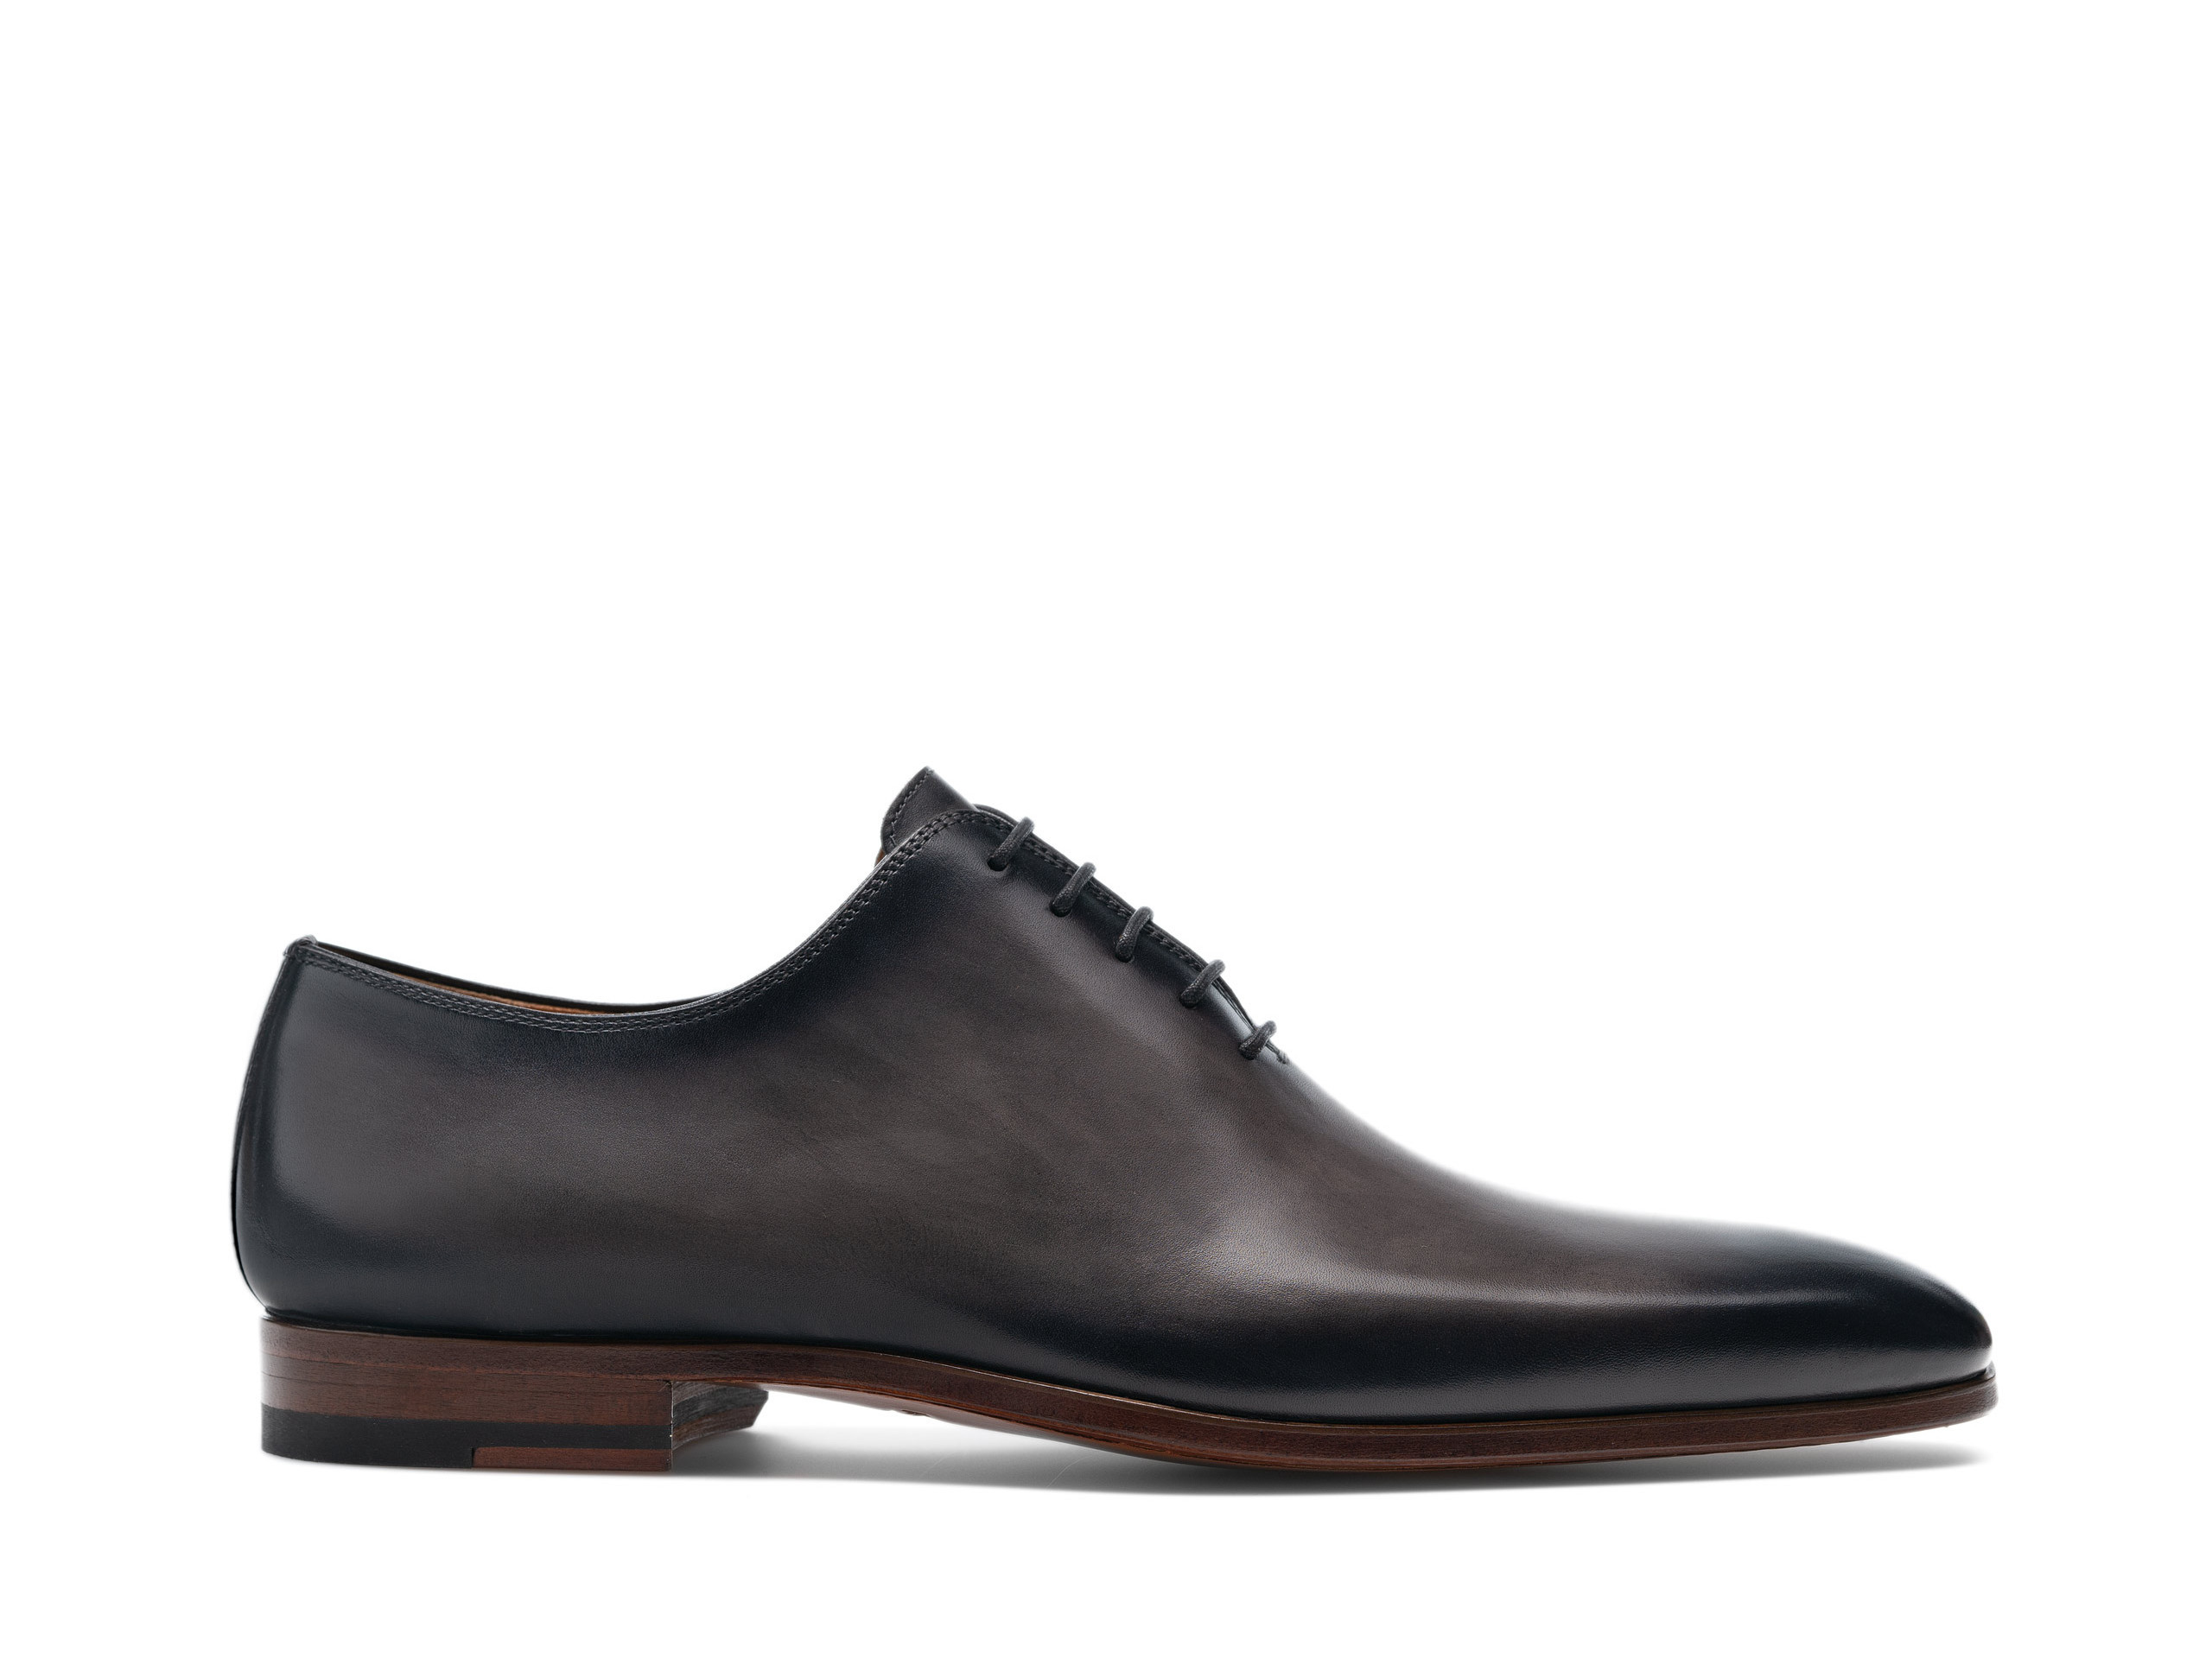 Side view of the Magnanni Cruz Grafito Men's Oxford Shoes